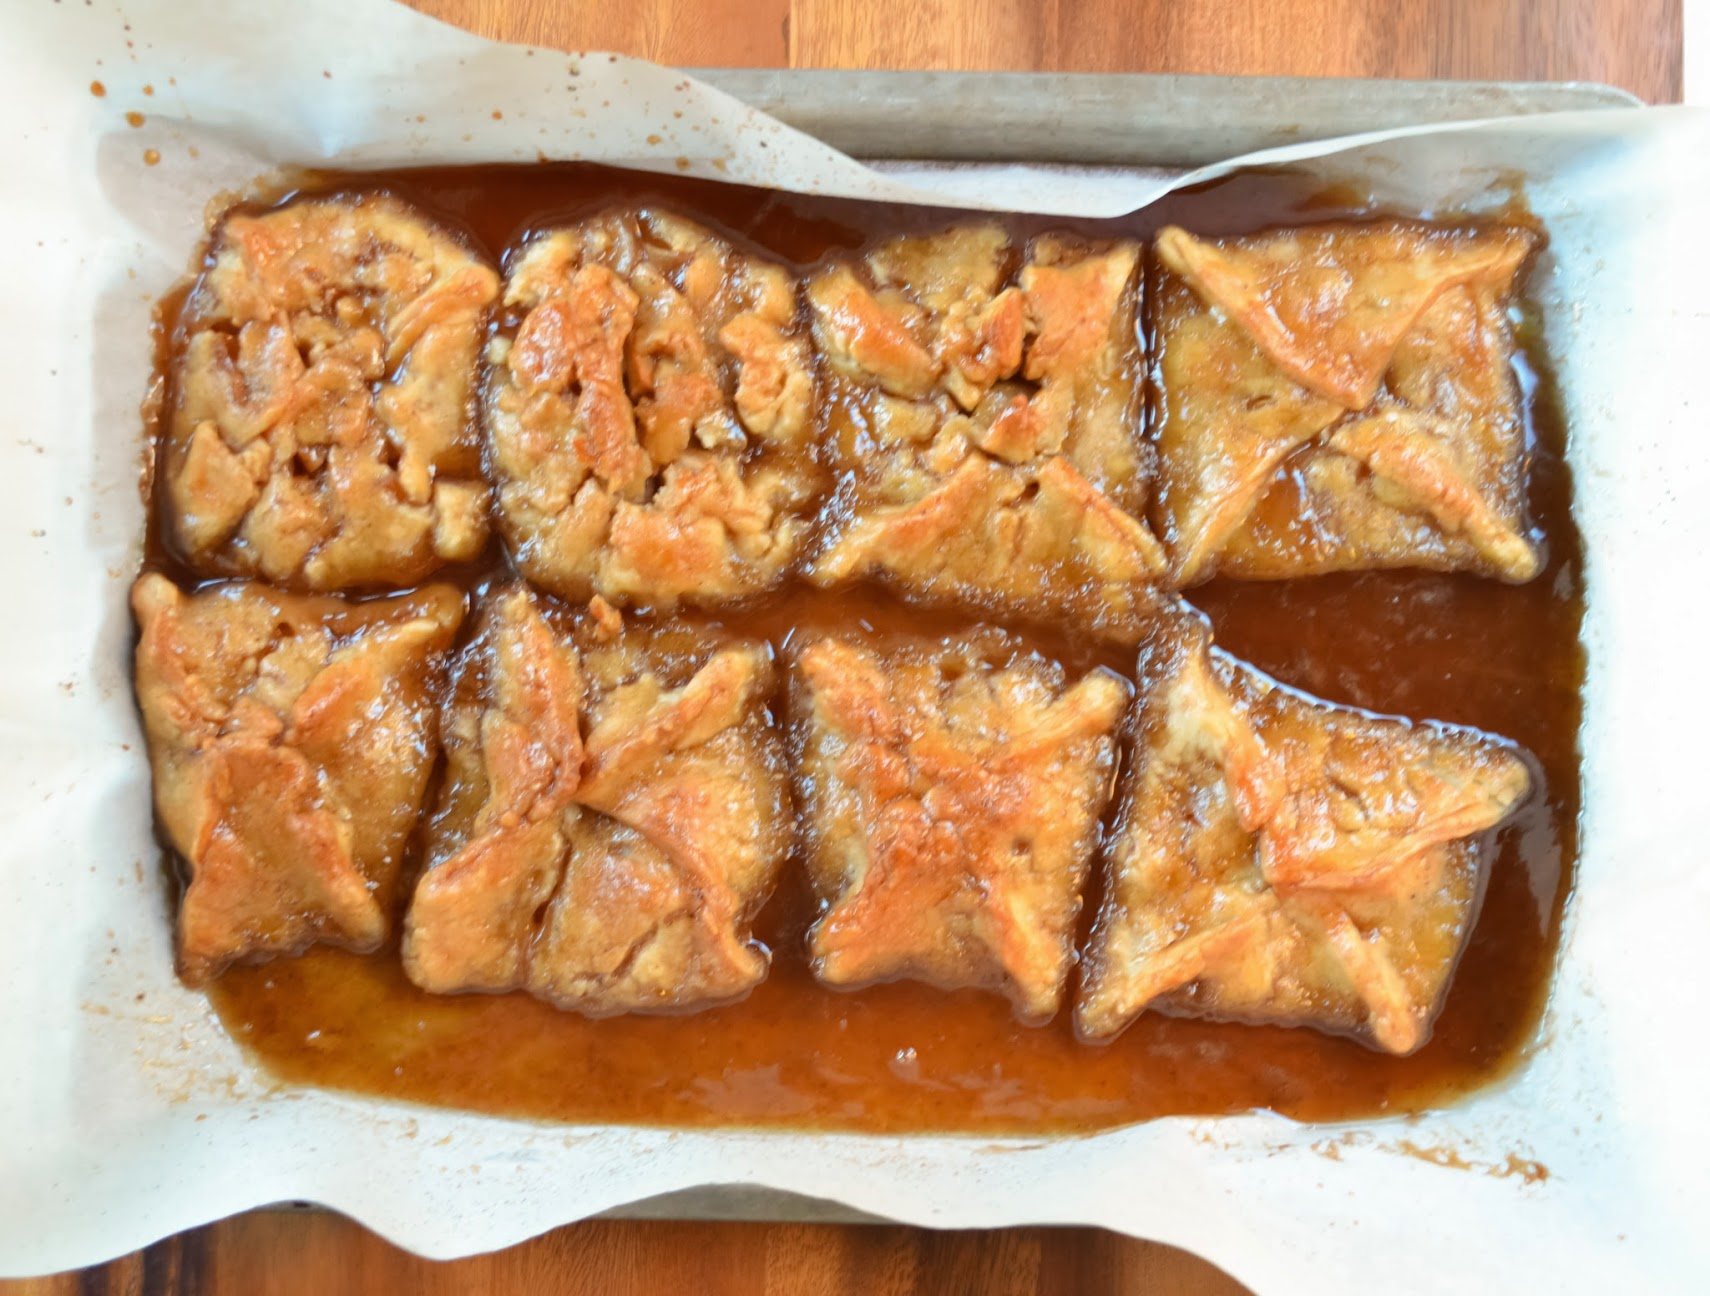 Apple-Dumplings-In-Caramel-Cinnamon-Syrup-Cool.jpg